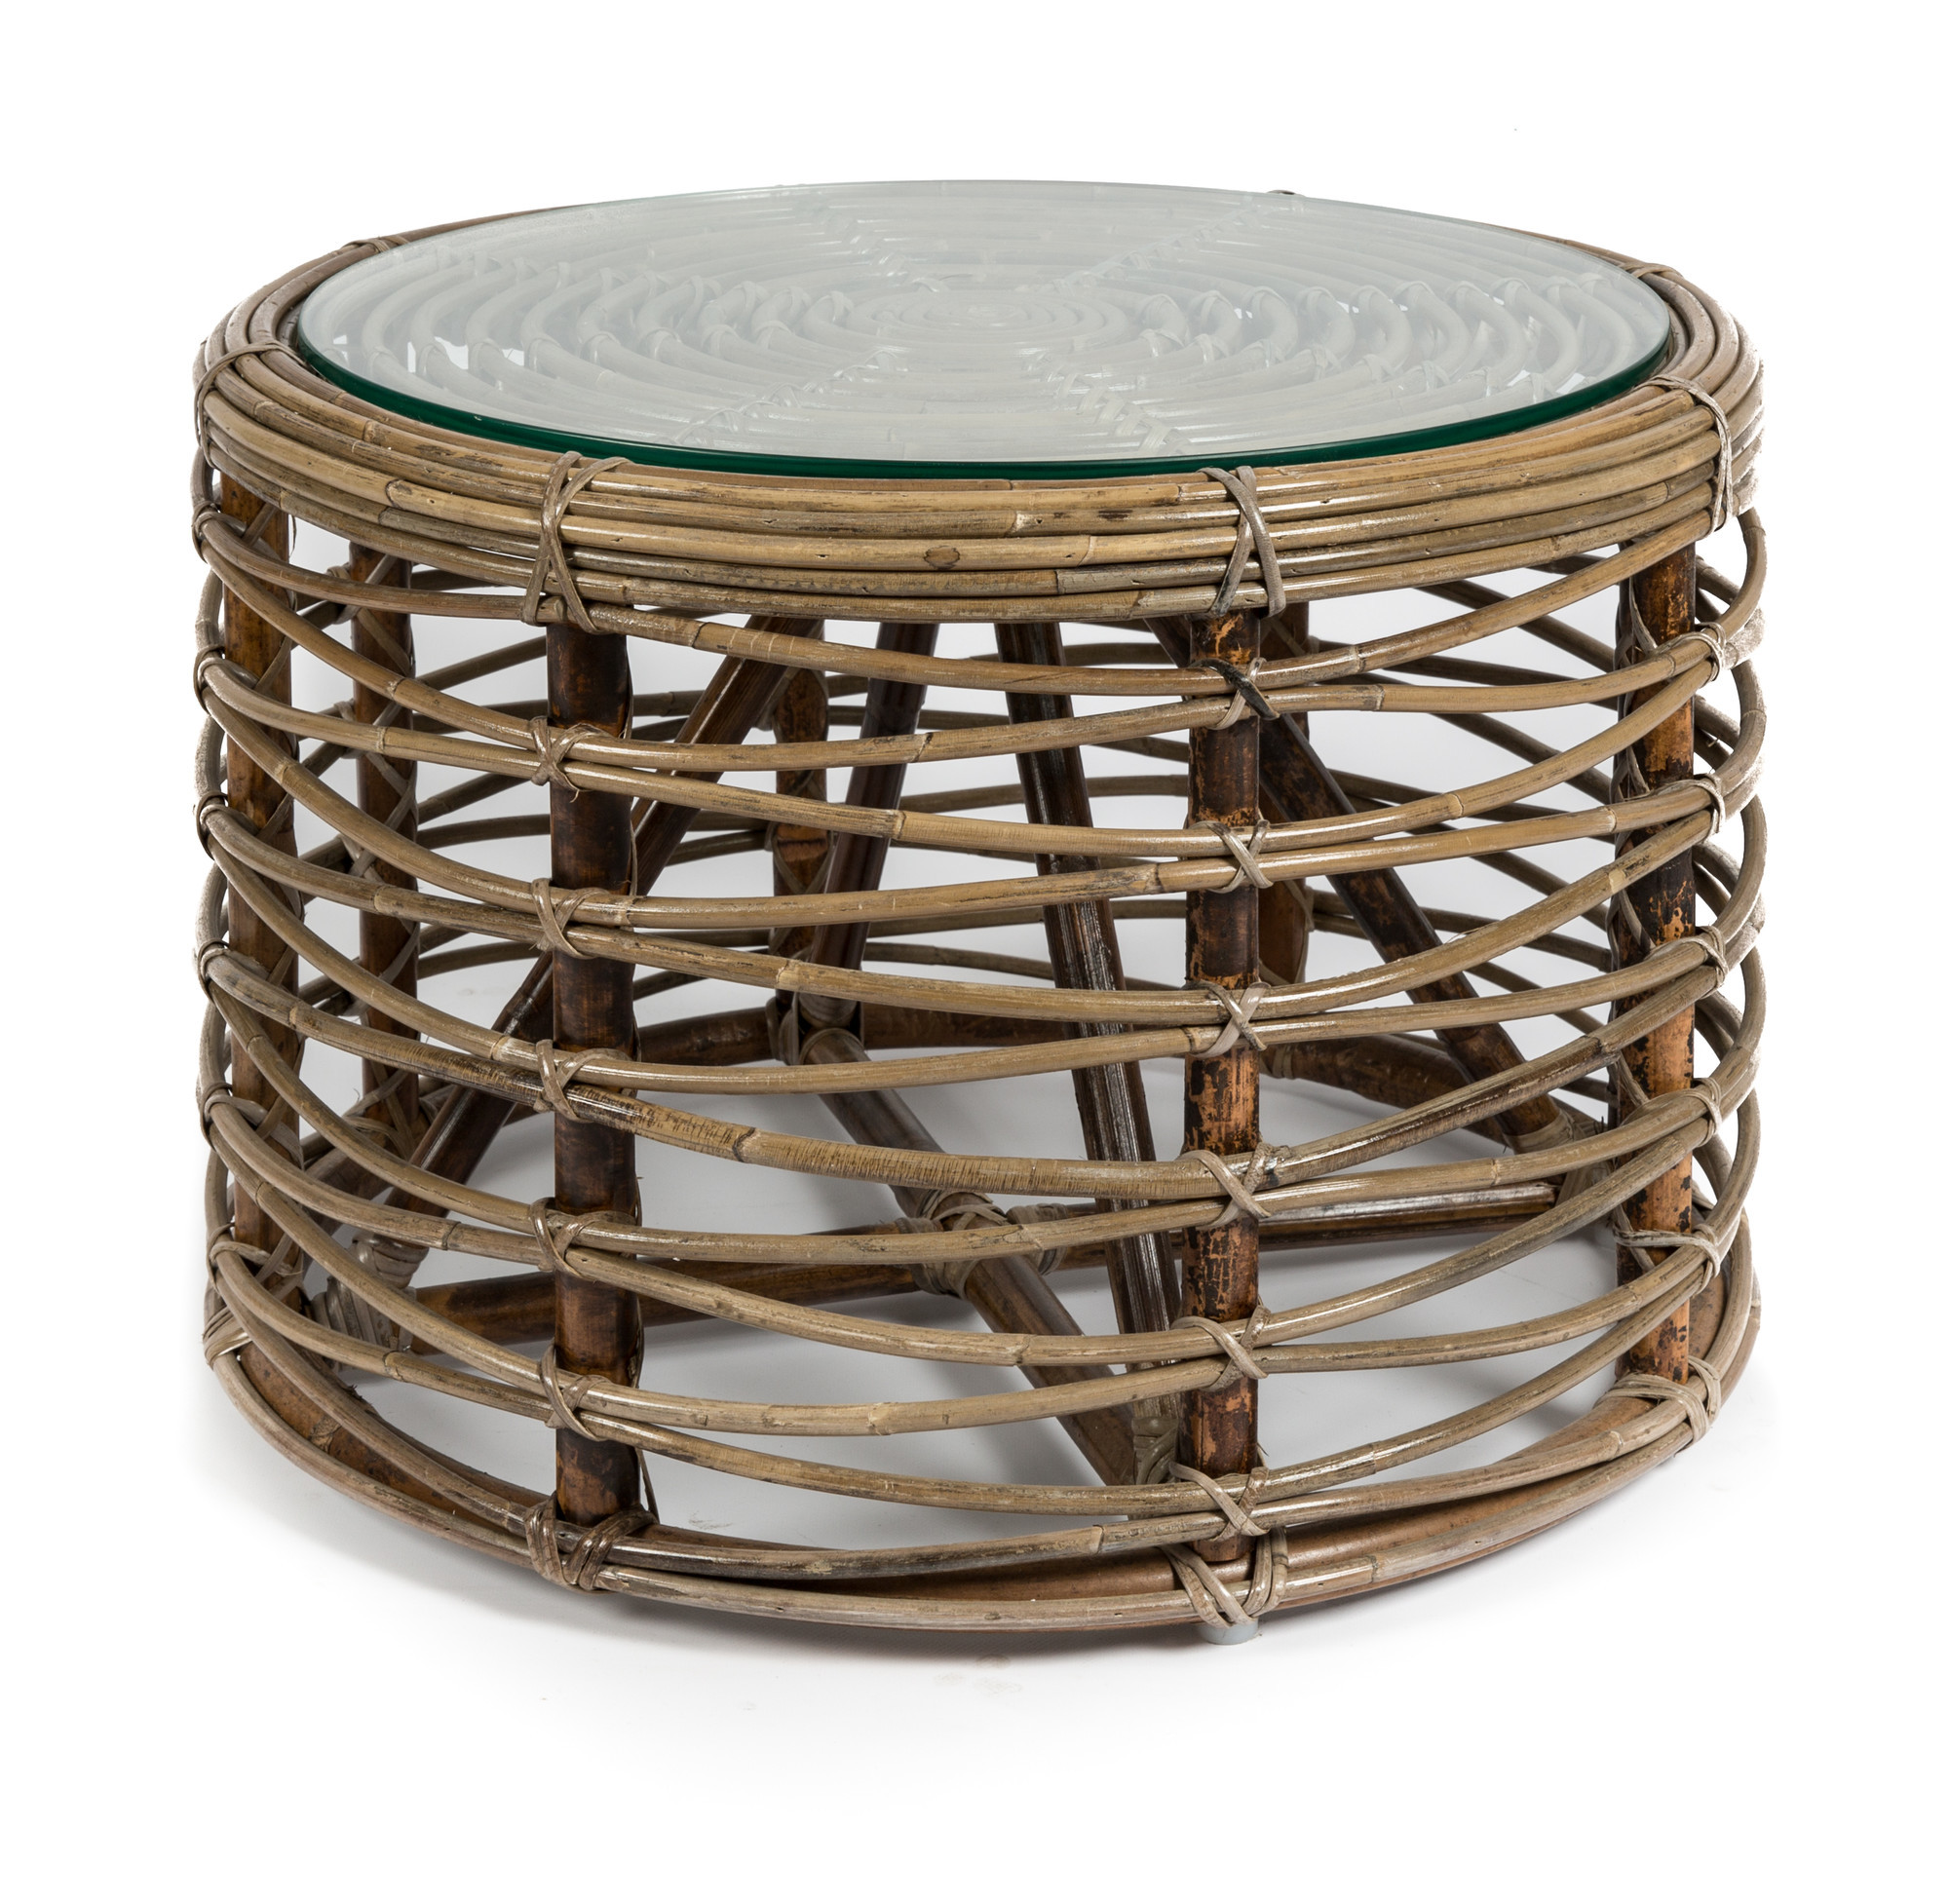 NEW Santiago Woven Rattan Round Coffee Table